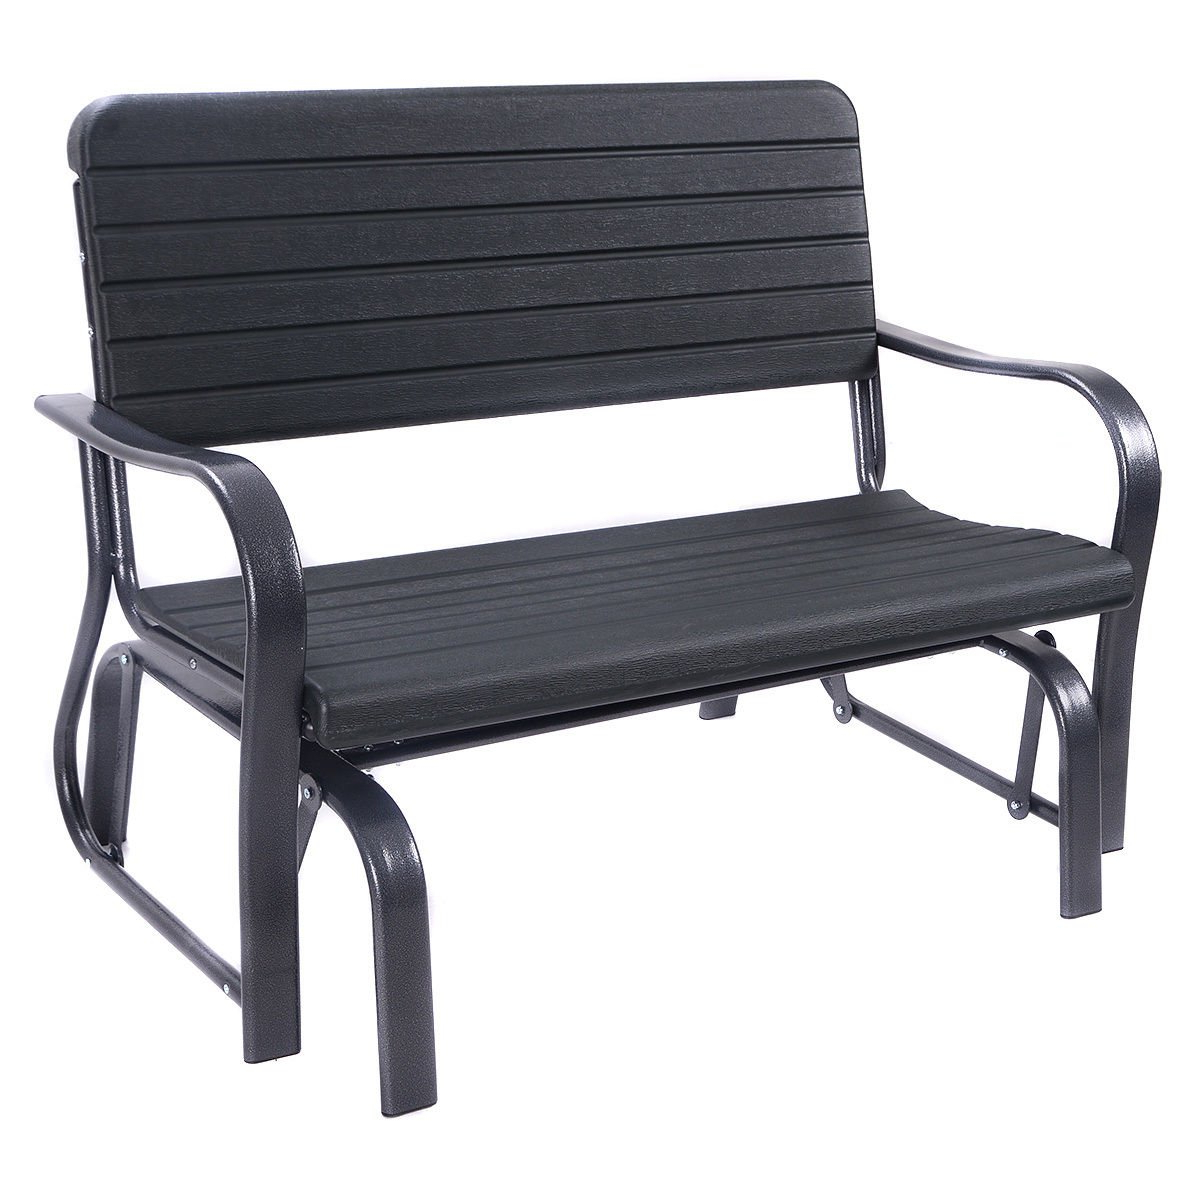 Well Known Amazon : Swing Porch Rocker Glider Bench Loveseat Garden With Regard To Black Steel Patio Swing Glider Benches Powder Coated (View 29 of 30)